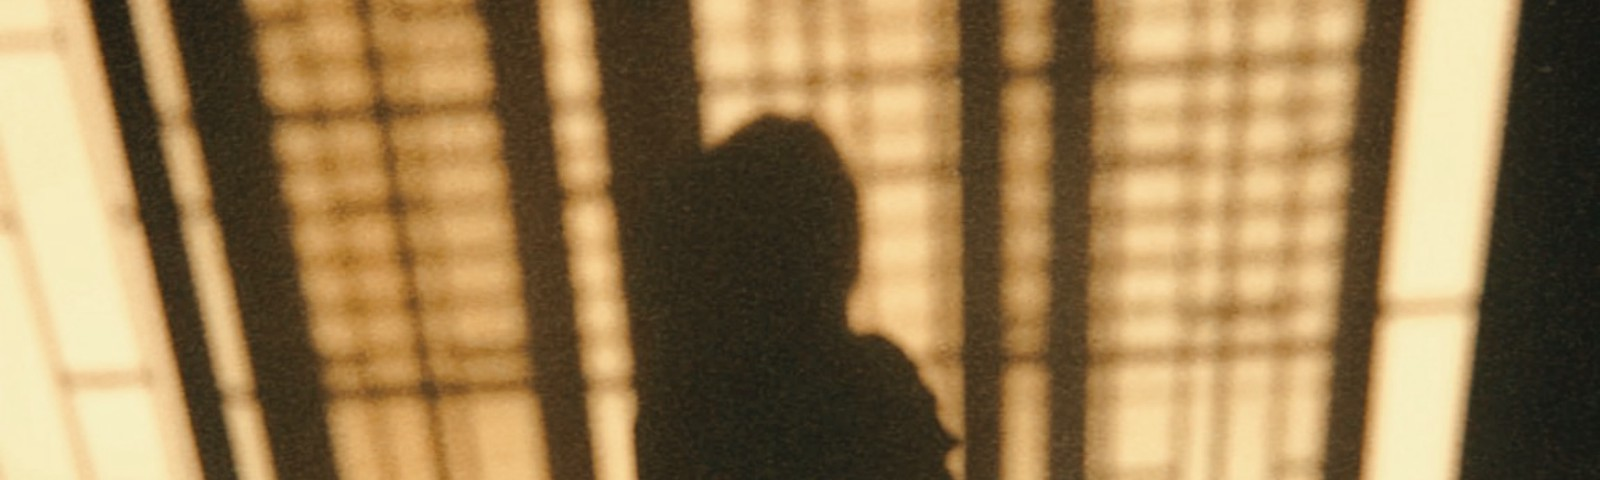 Shadows of a girl at a window.